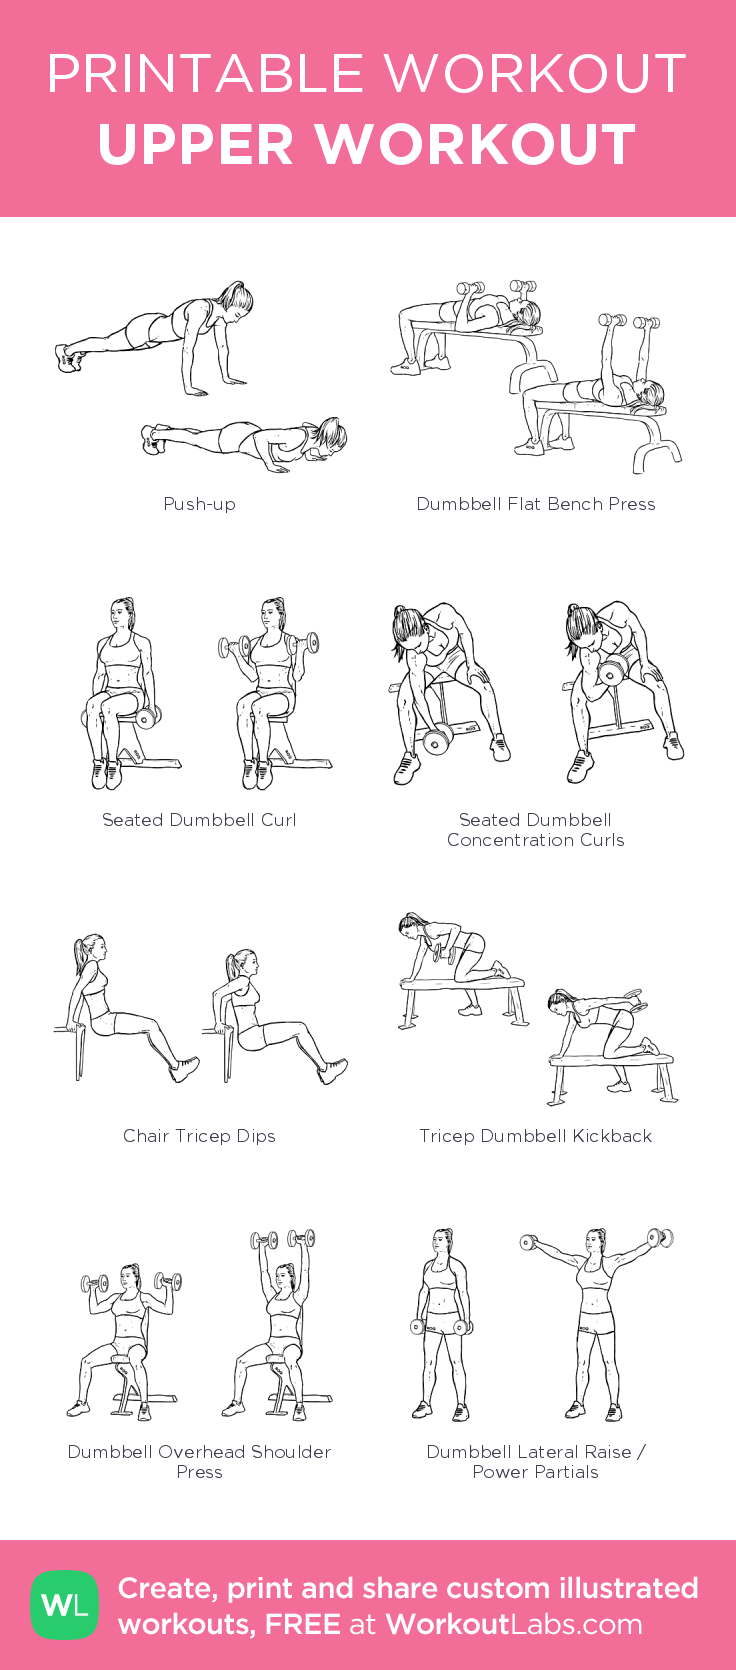 upper workout my visual workout created at workoutlabs com click